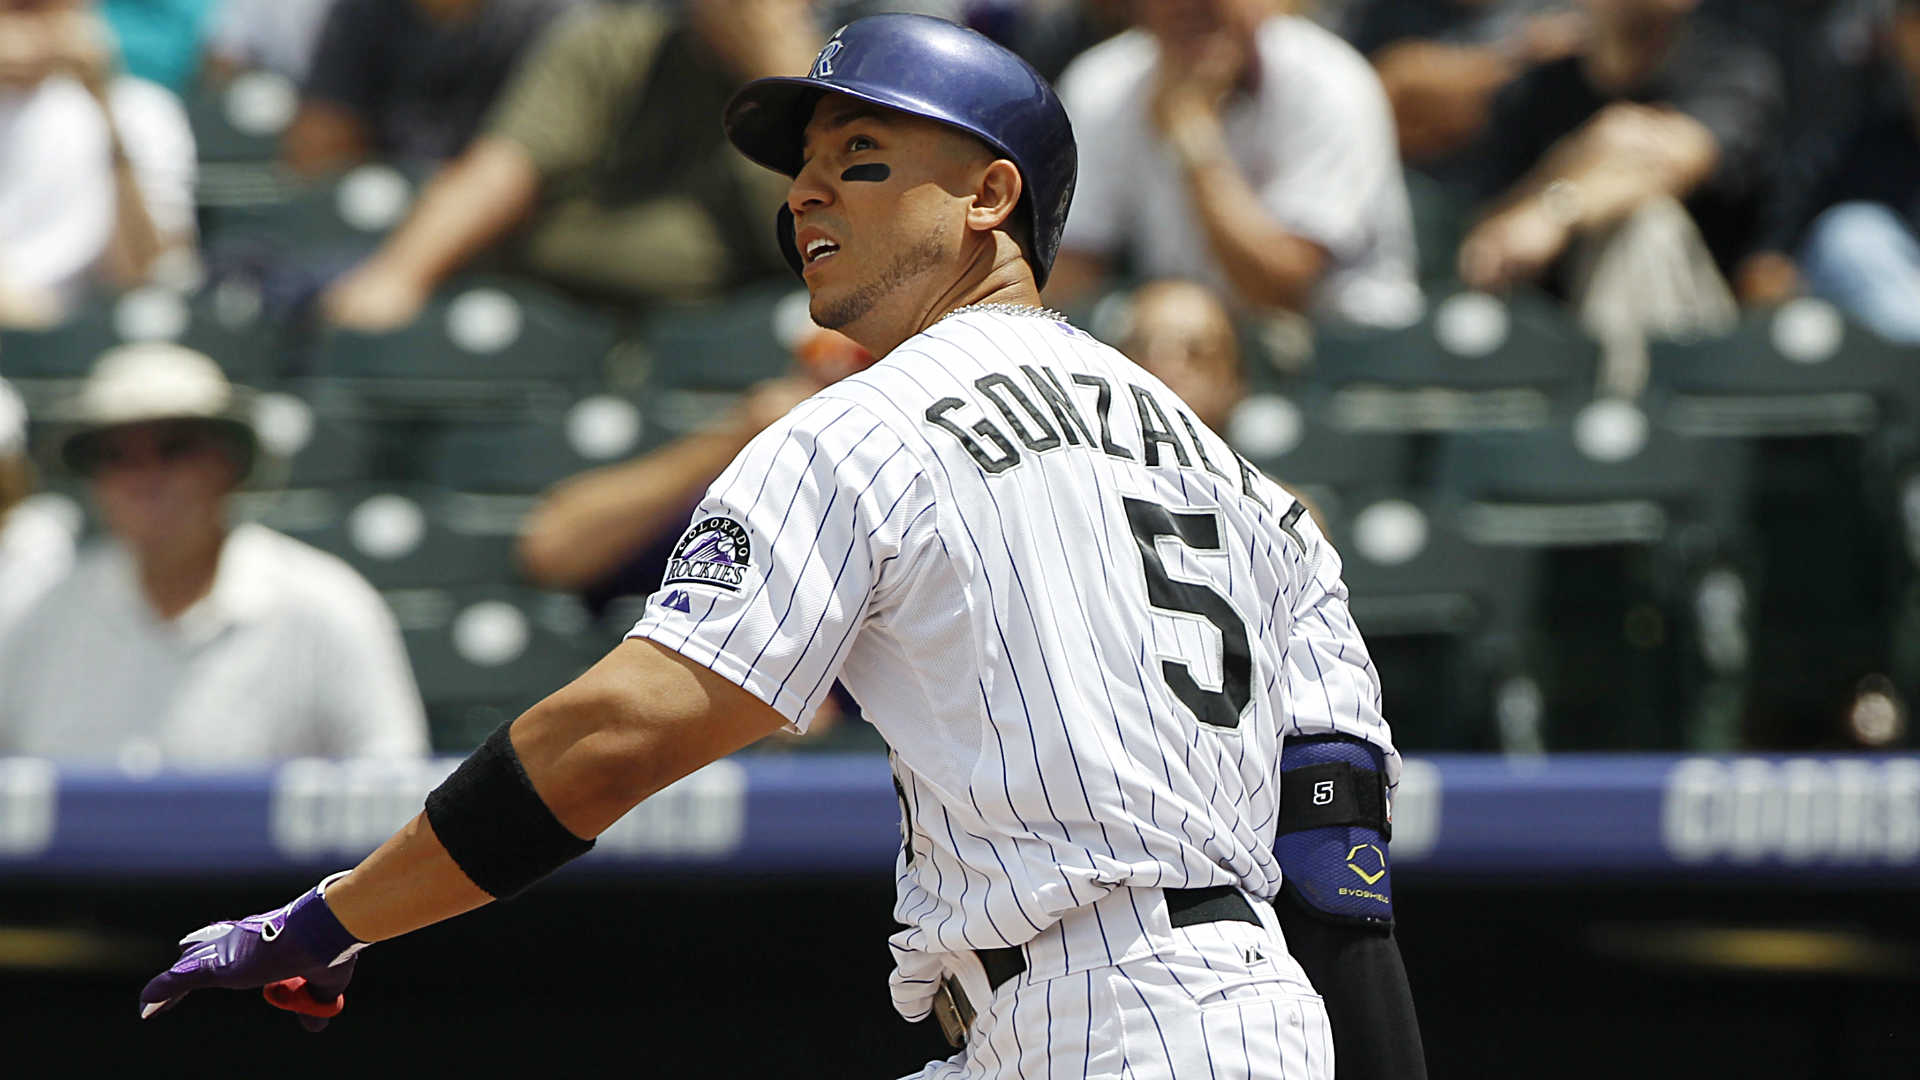 Fantasy baseball mock draft: The right time to draft Carlos Gonzalez